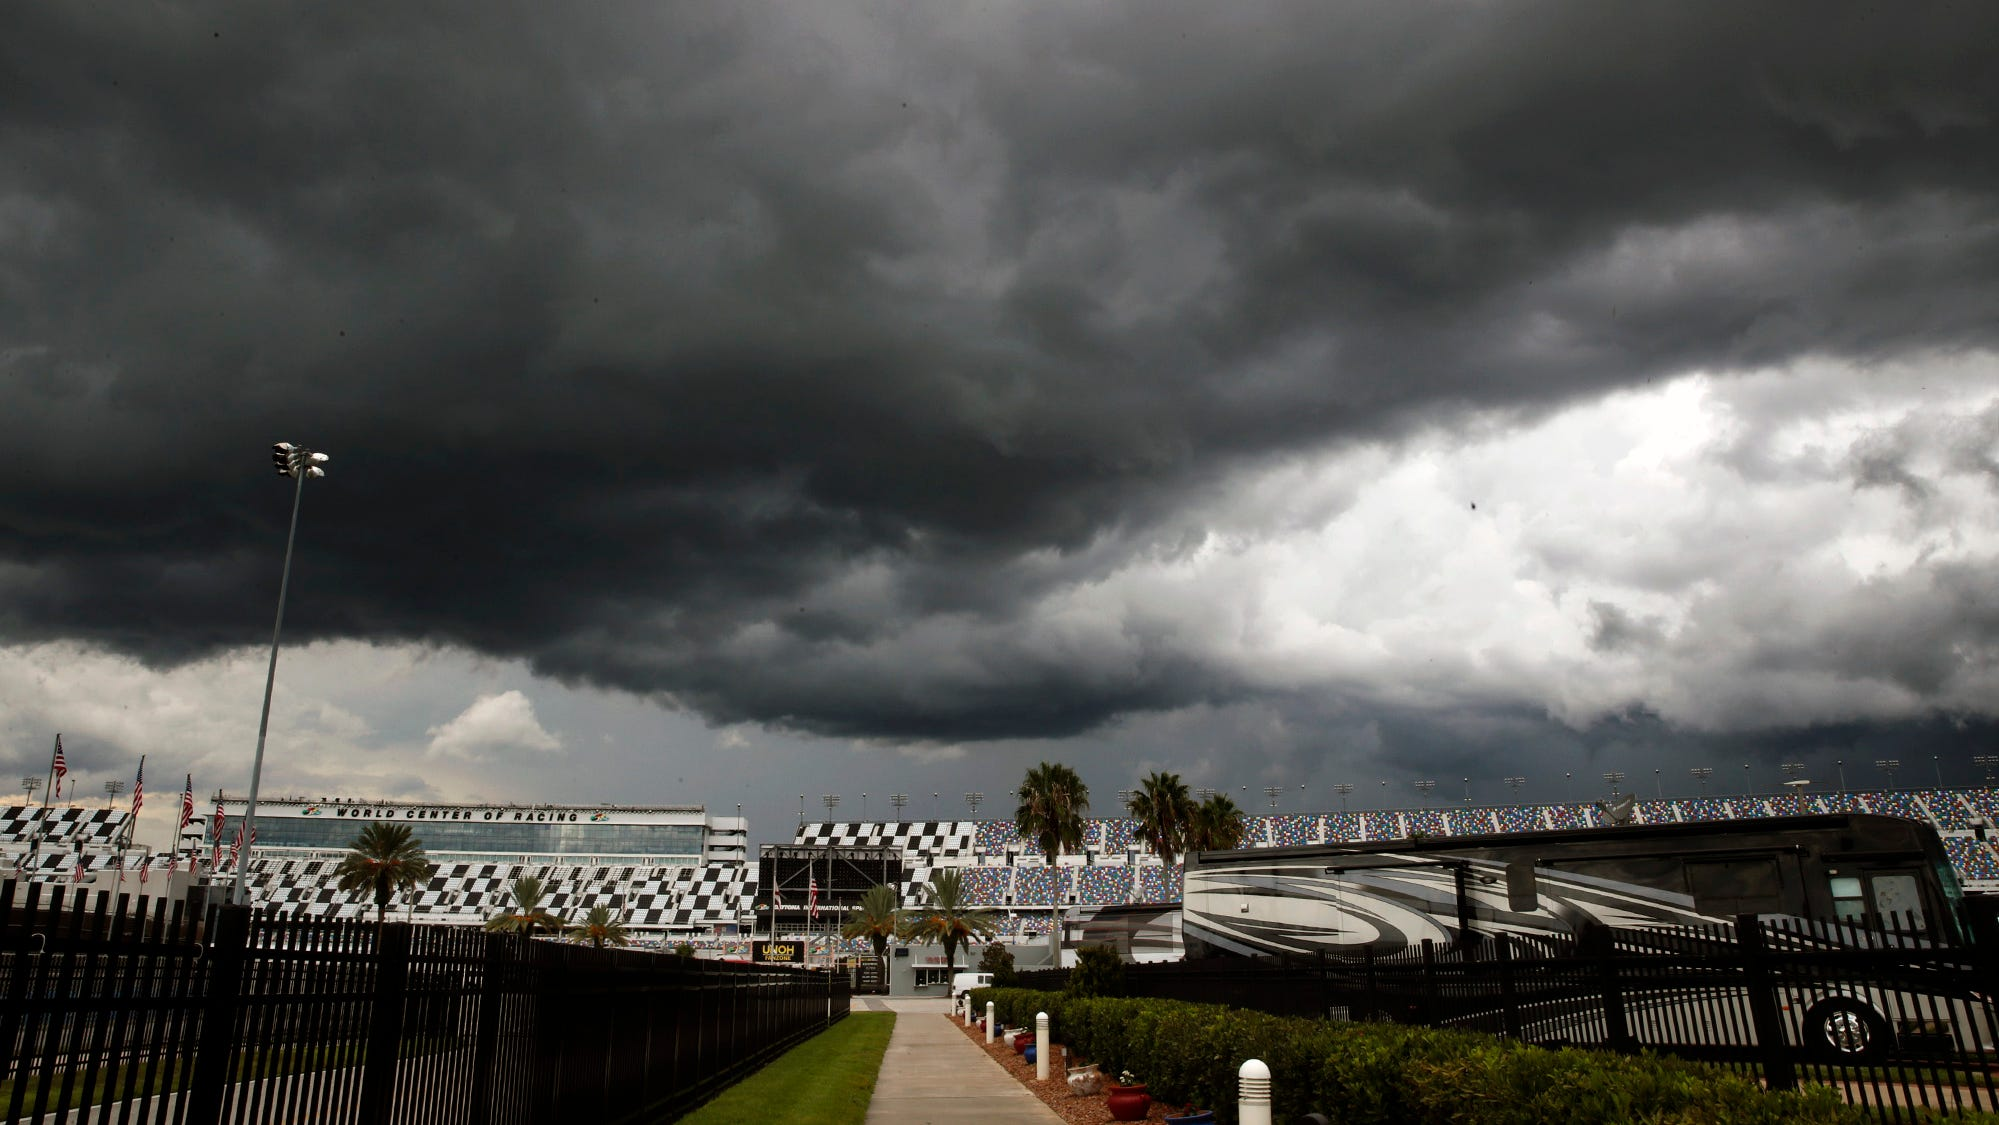 Storm clouds gather over Daytona International Speedway delaying the start of the Xfinity UNOH 188 race at Daytona International Speedway, Saturday, August 15, 2020.